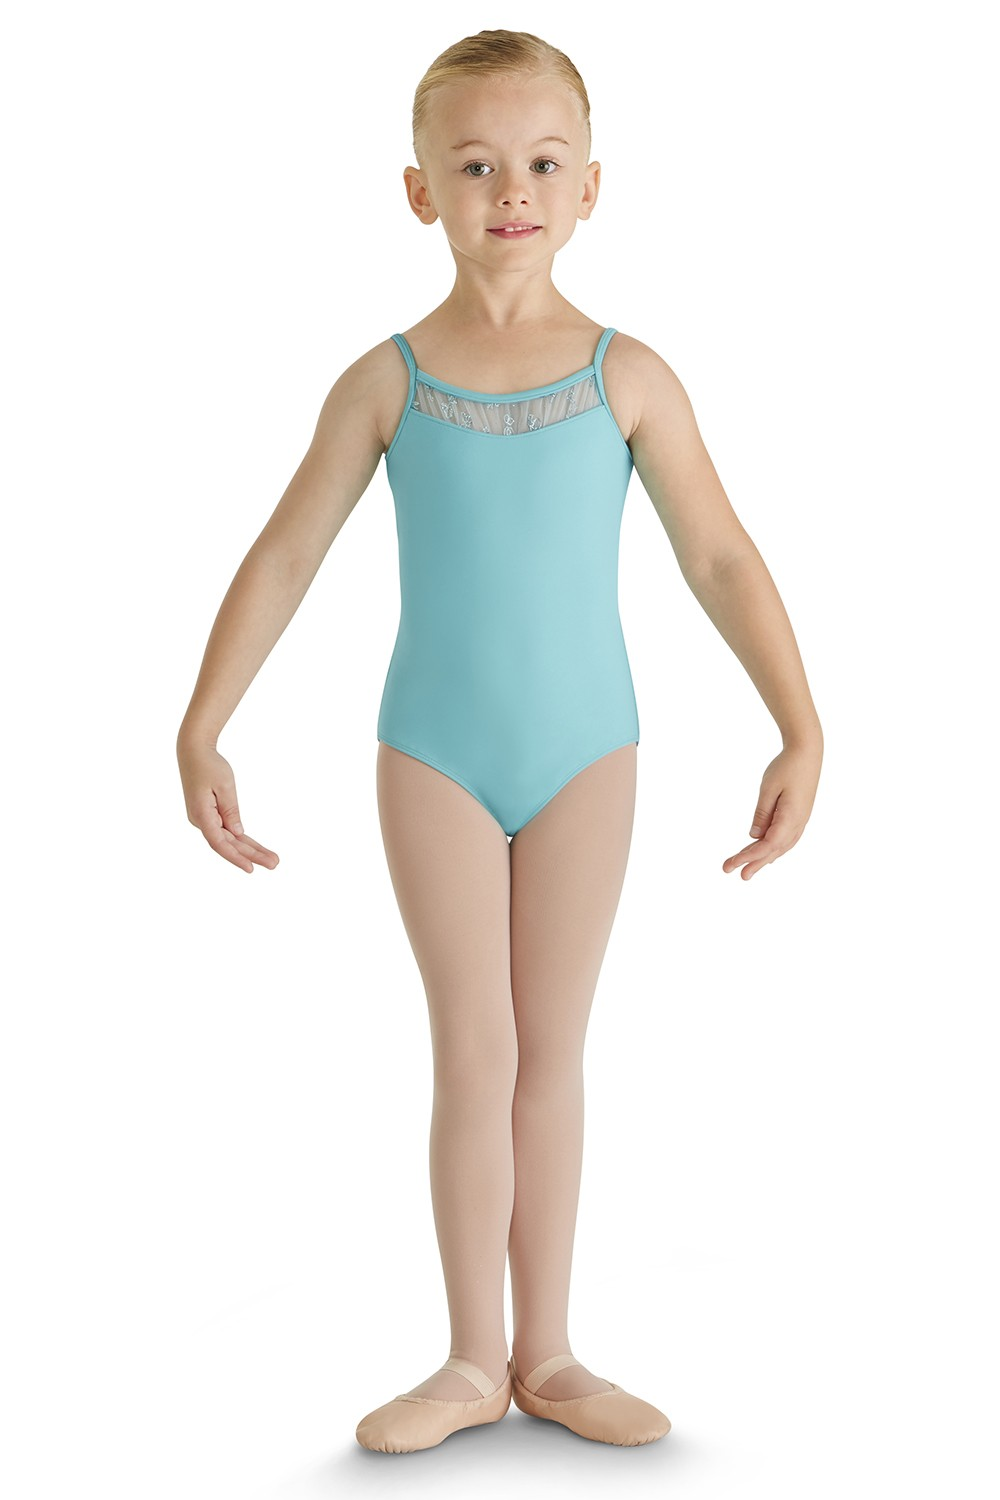 Goidron Children's Dance Leotards